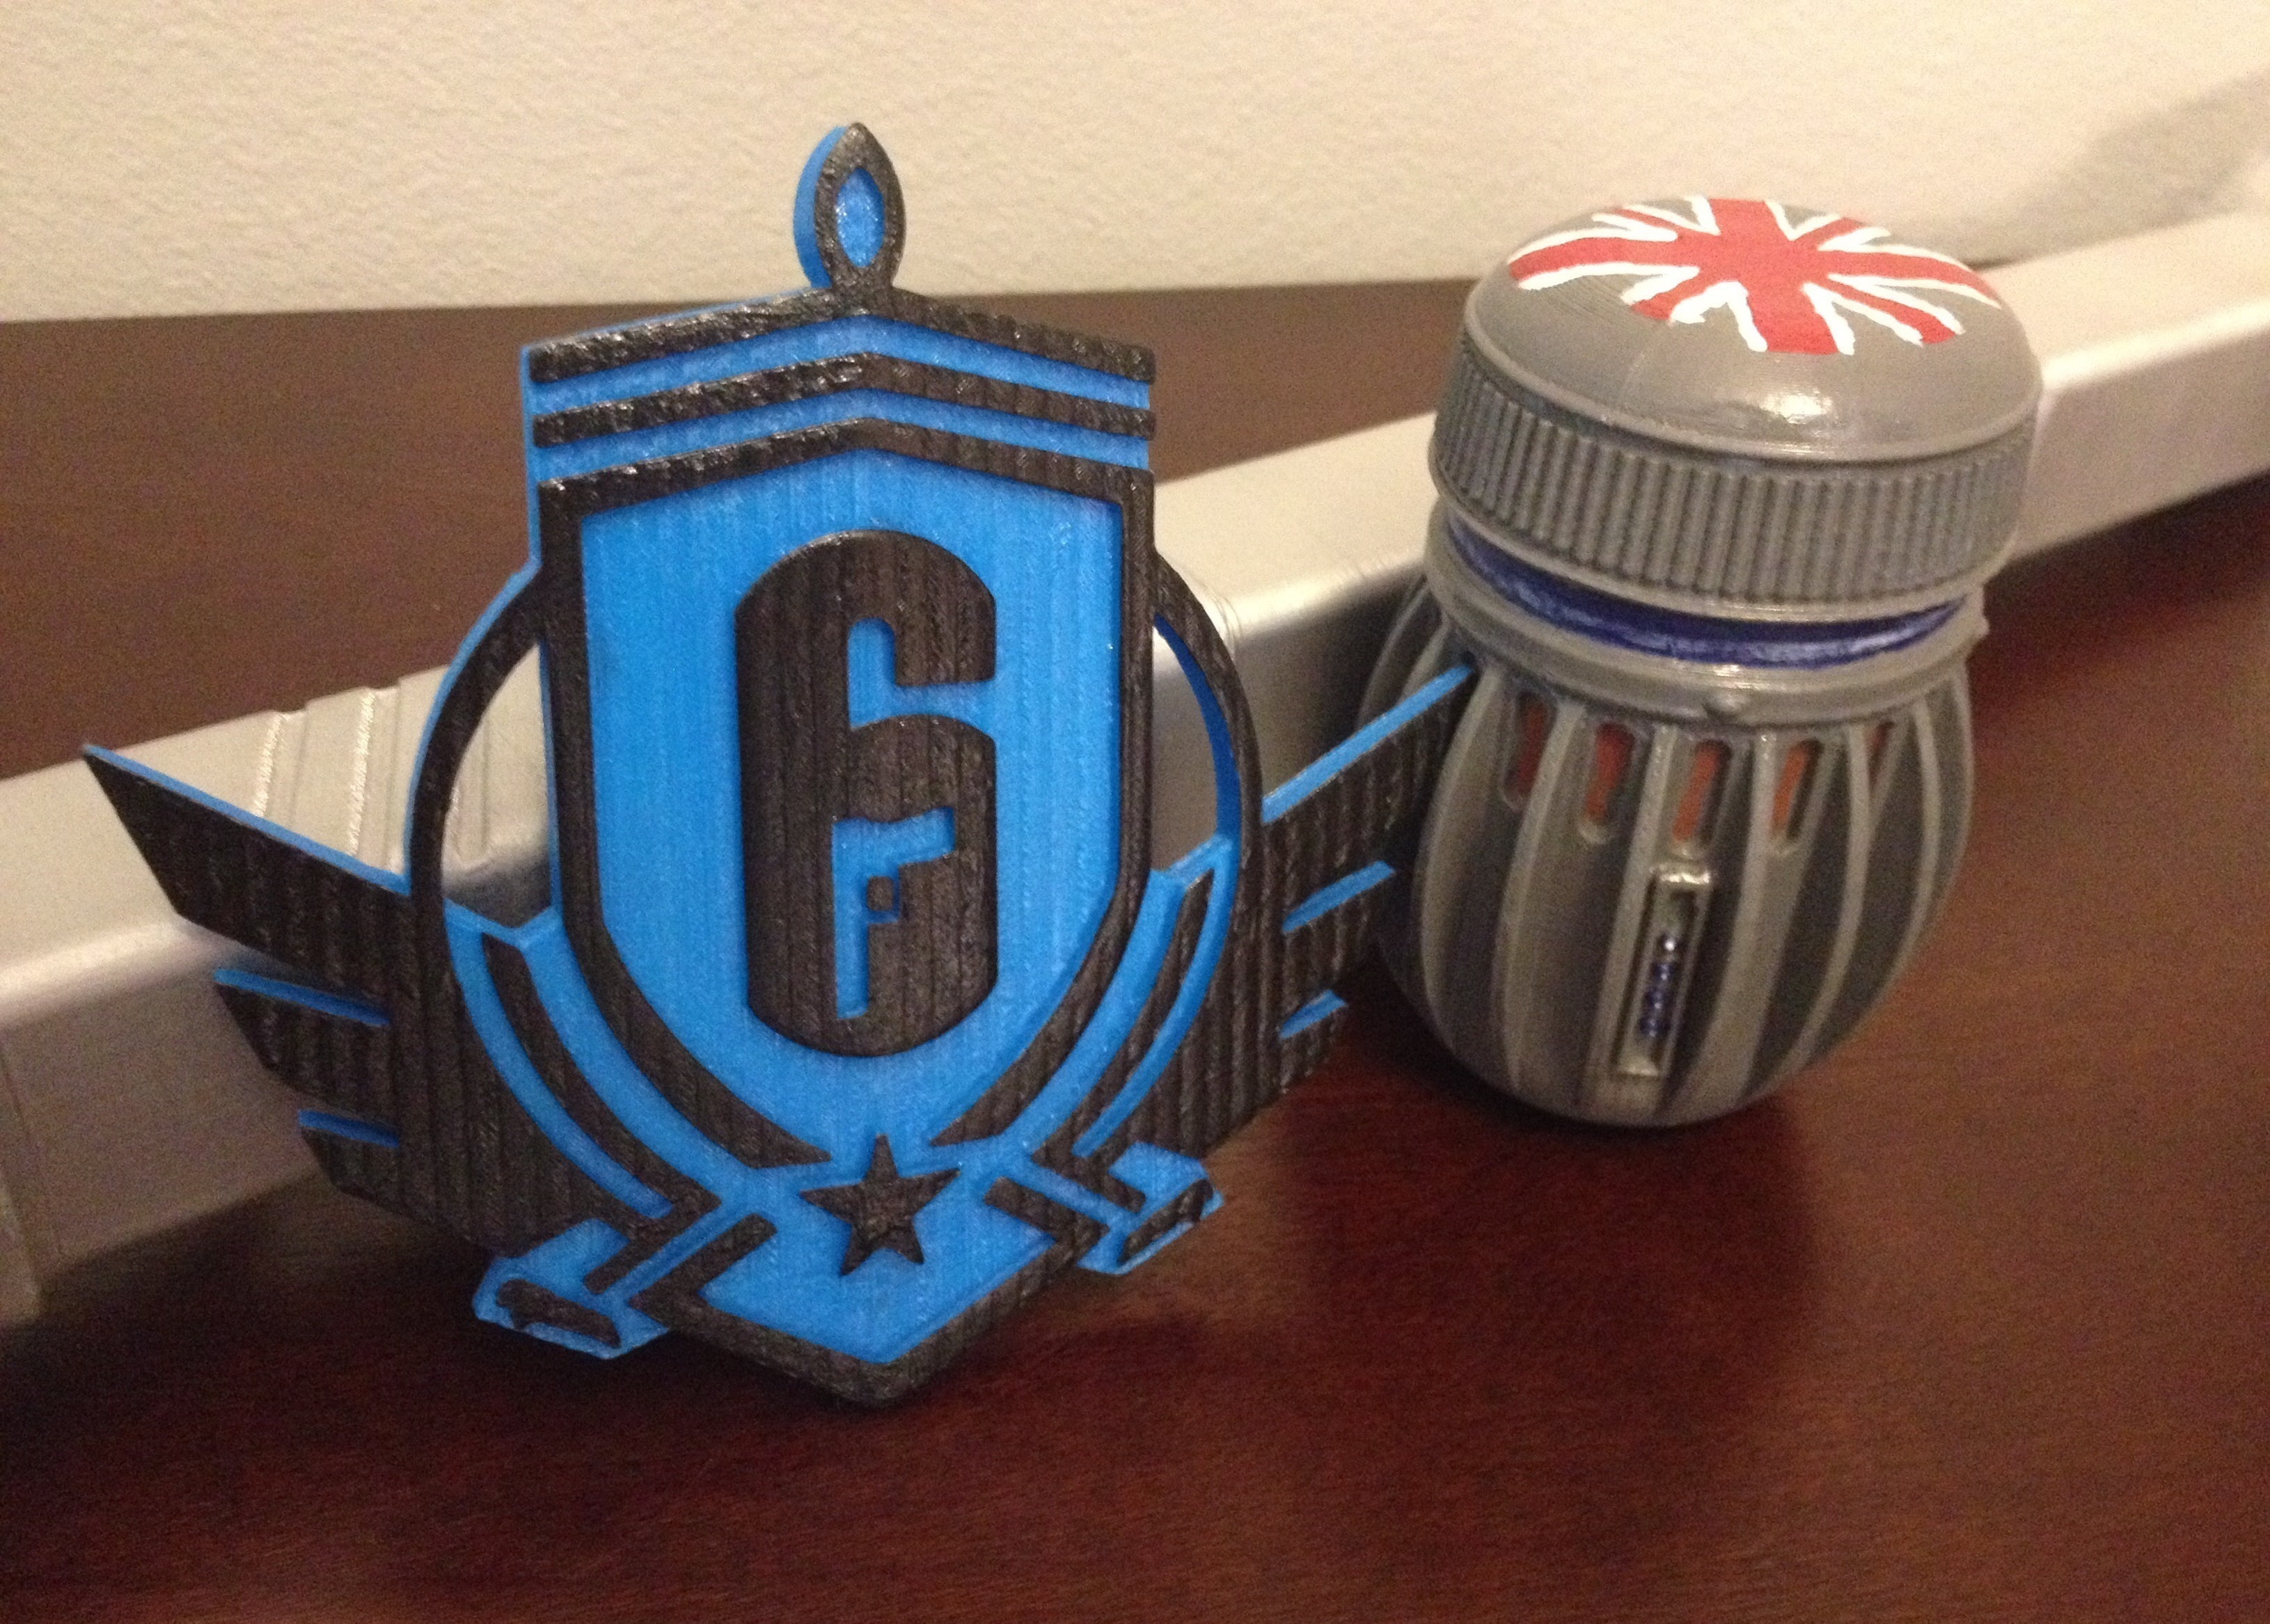 3D Printed Rainbow Six Siege: Diamond Emblem by Jacob Nave | Pinshape